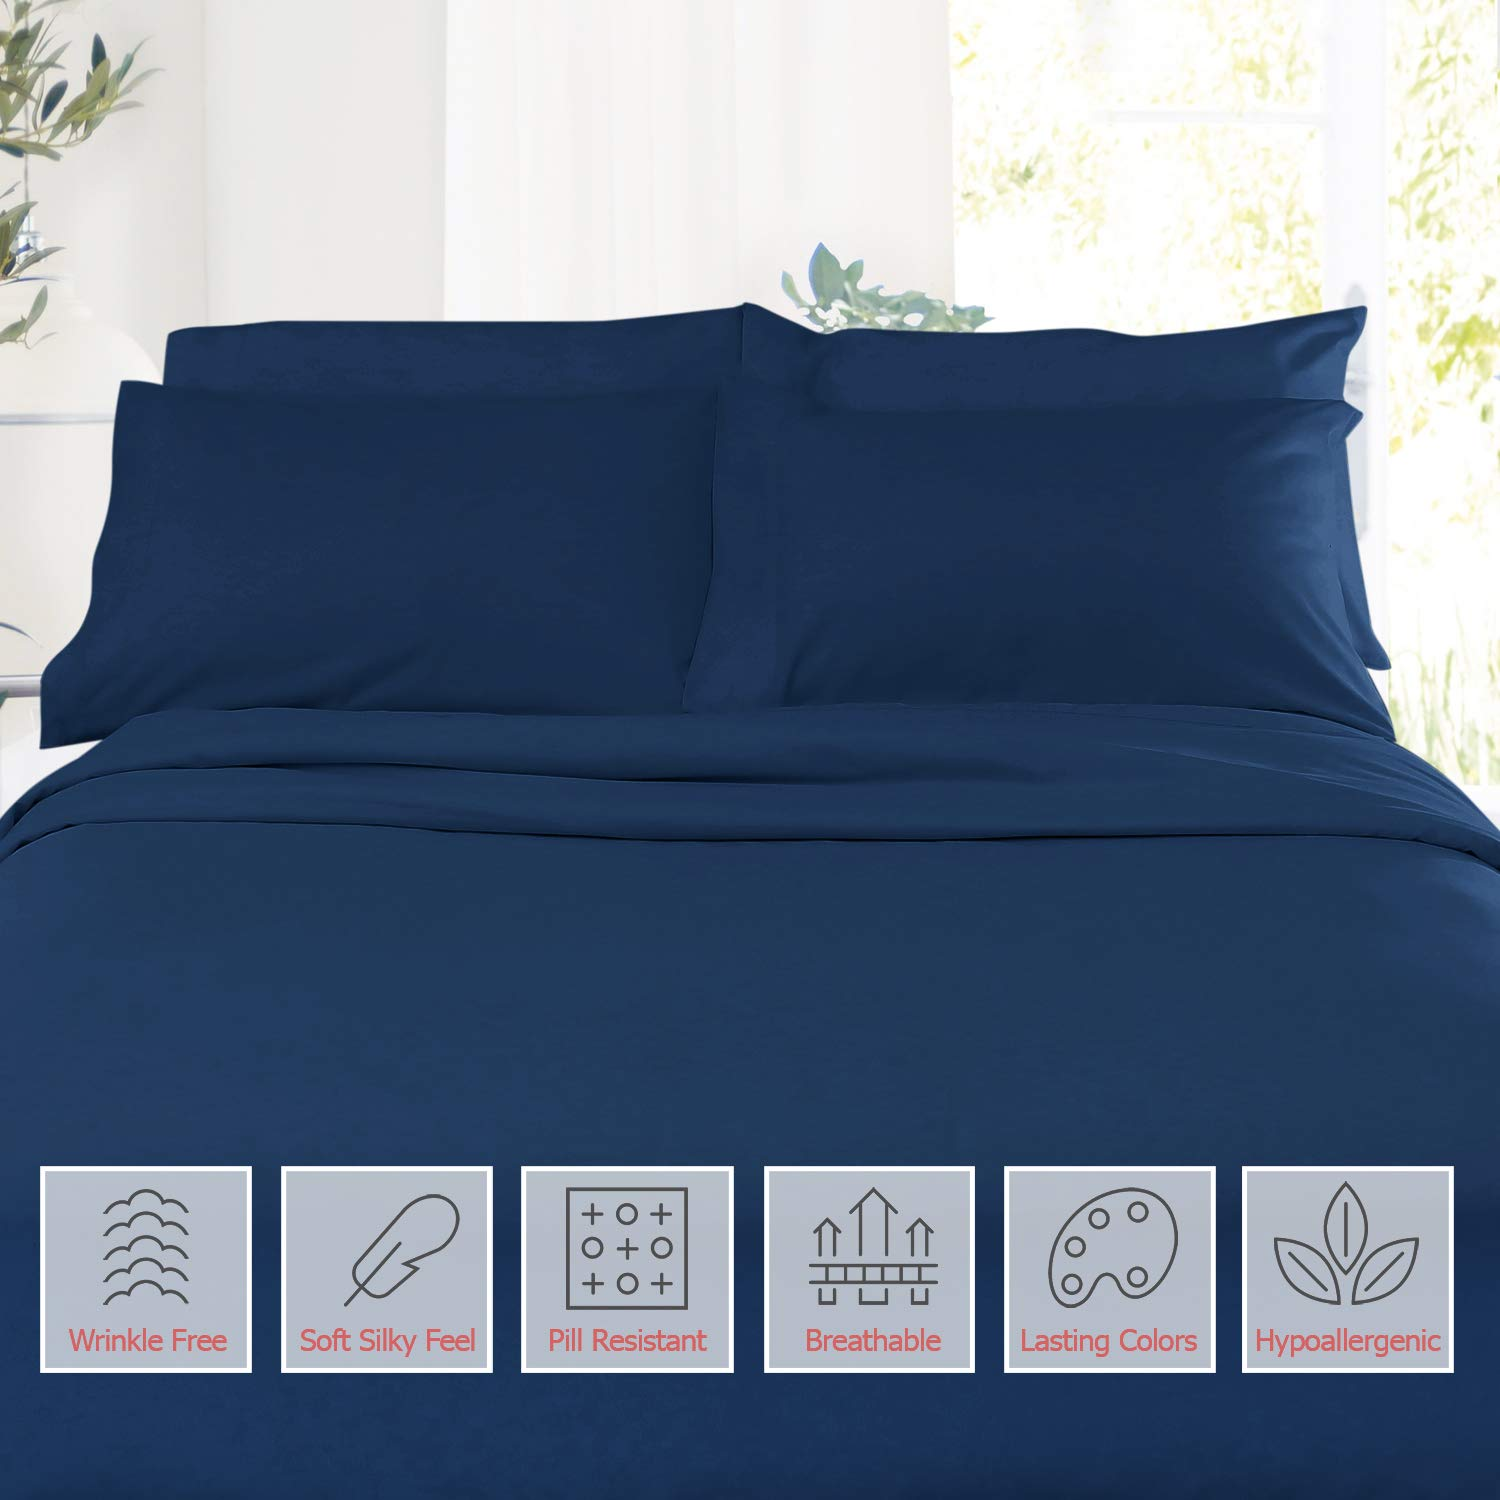 """Microfiber Silky Soft Crib Sheets Hypoallergenic Toddler Sheets 28x52 with 14/""""x19/"""" Pillowcase Breathable Soft Cozy Baby Sheet Toddler Size Bed Sheets Set Mint"""